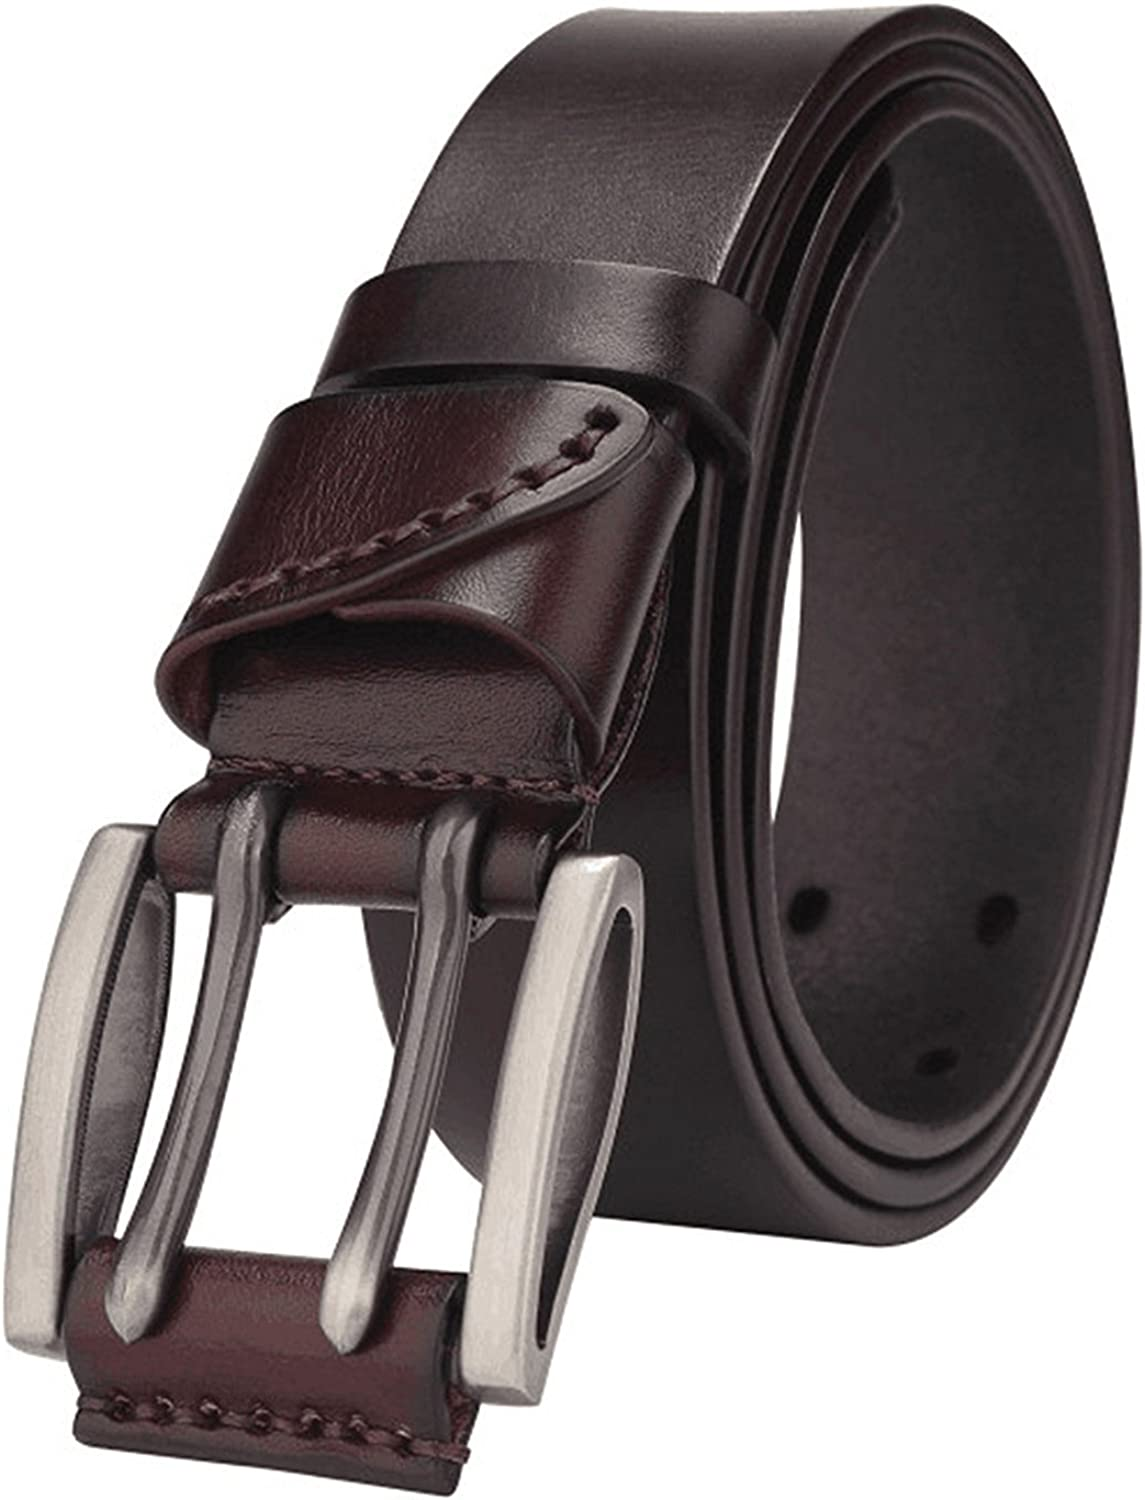 OnIn?Fashion Vintage double pin buckle genuine leather belt for men Casual jeans accessories